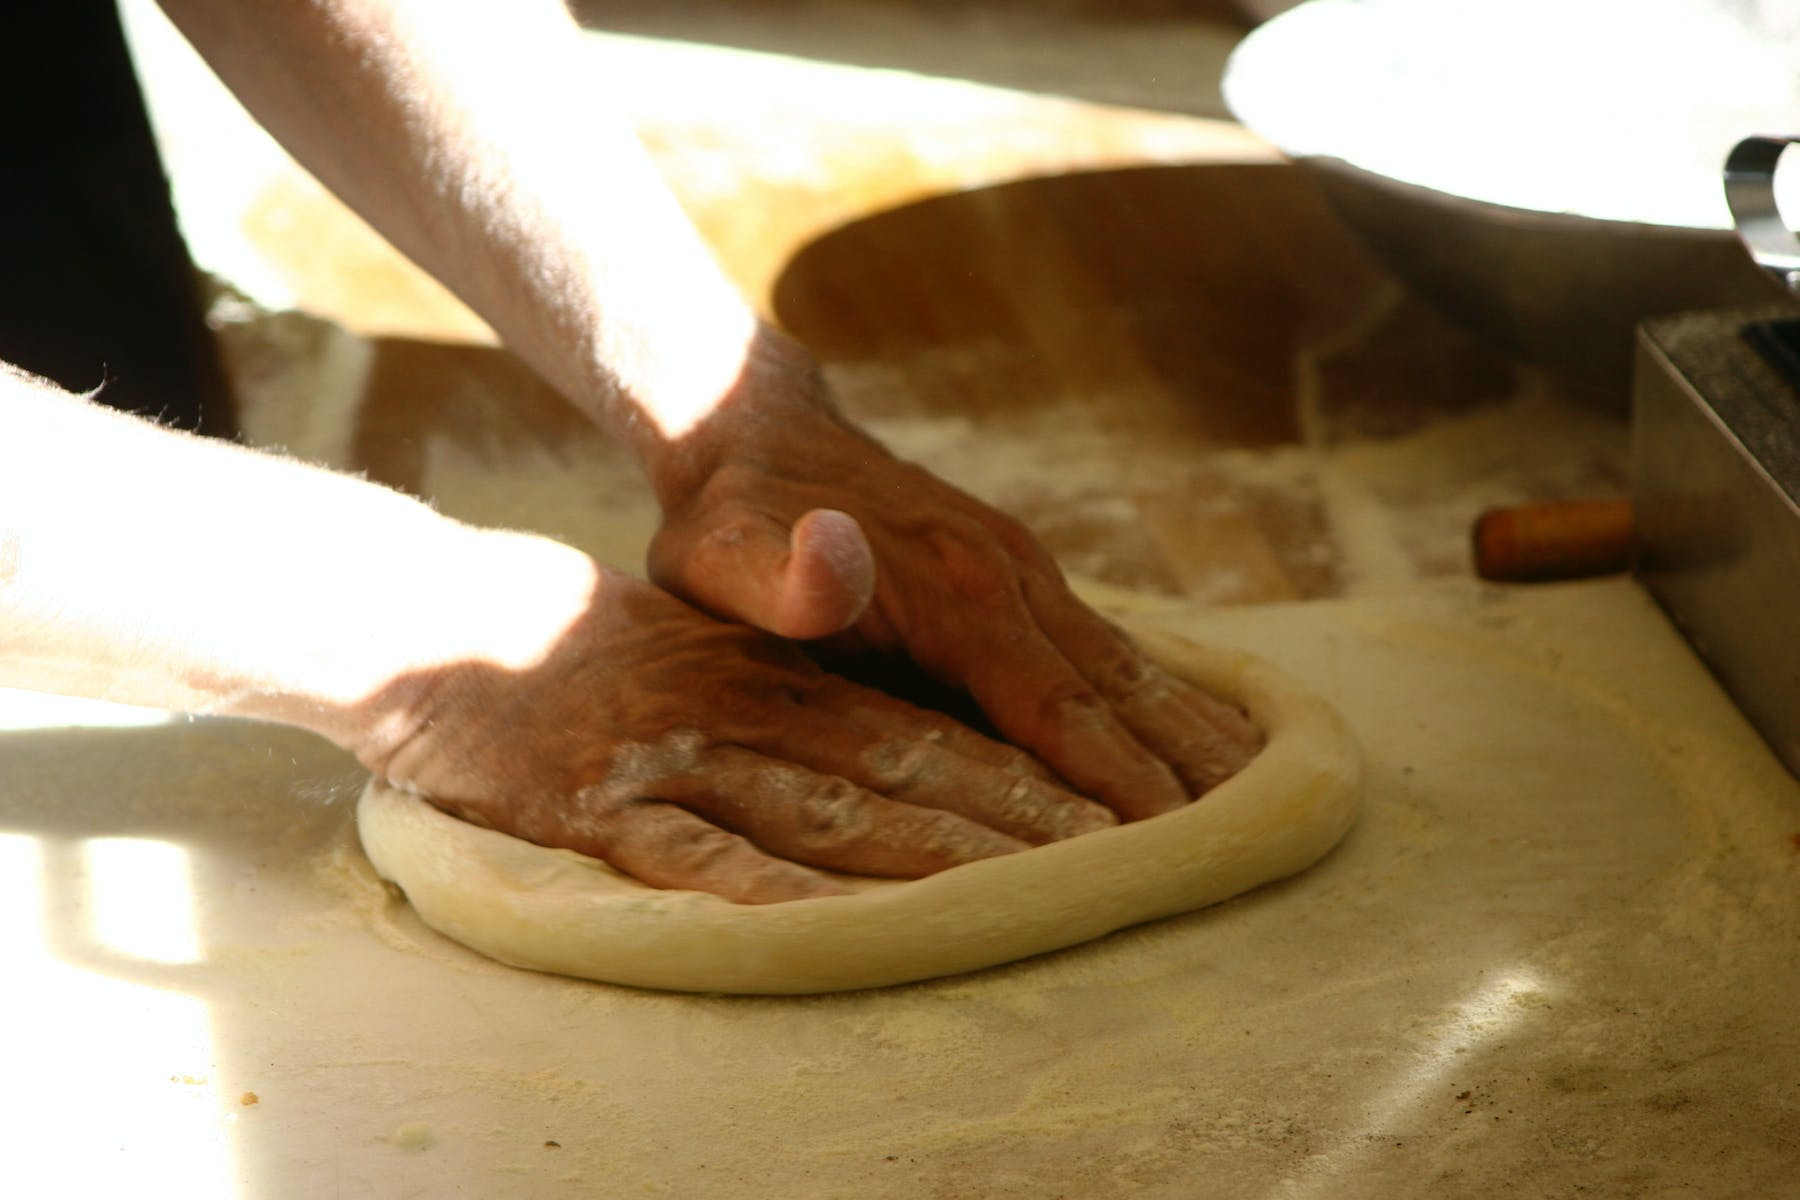 hands preparing a dough